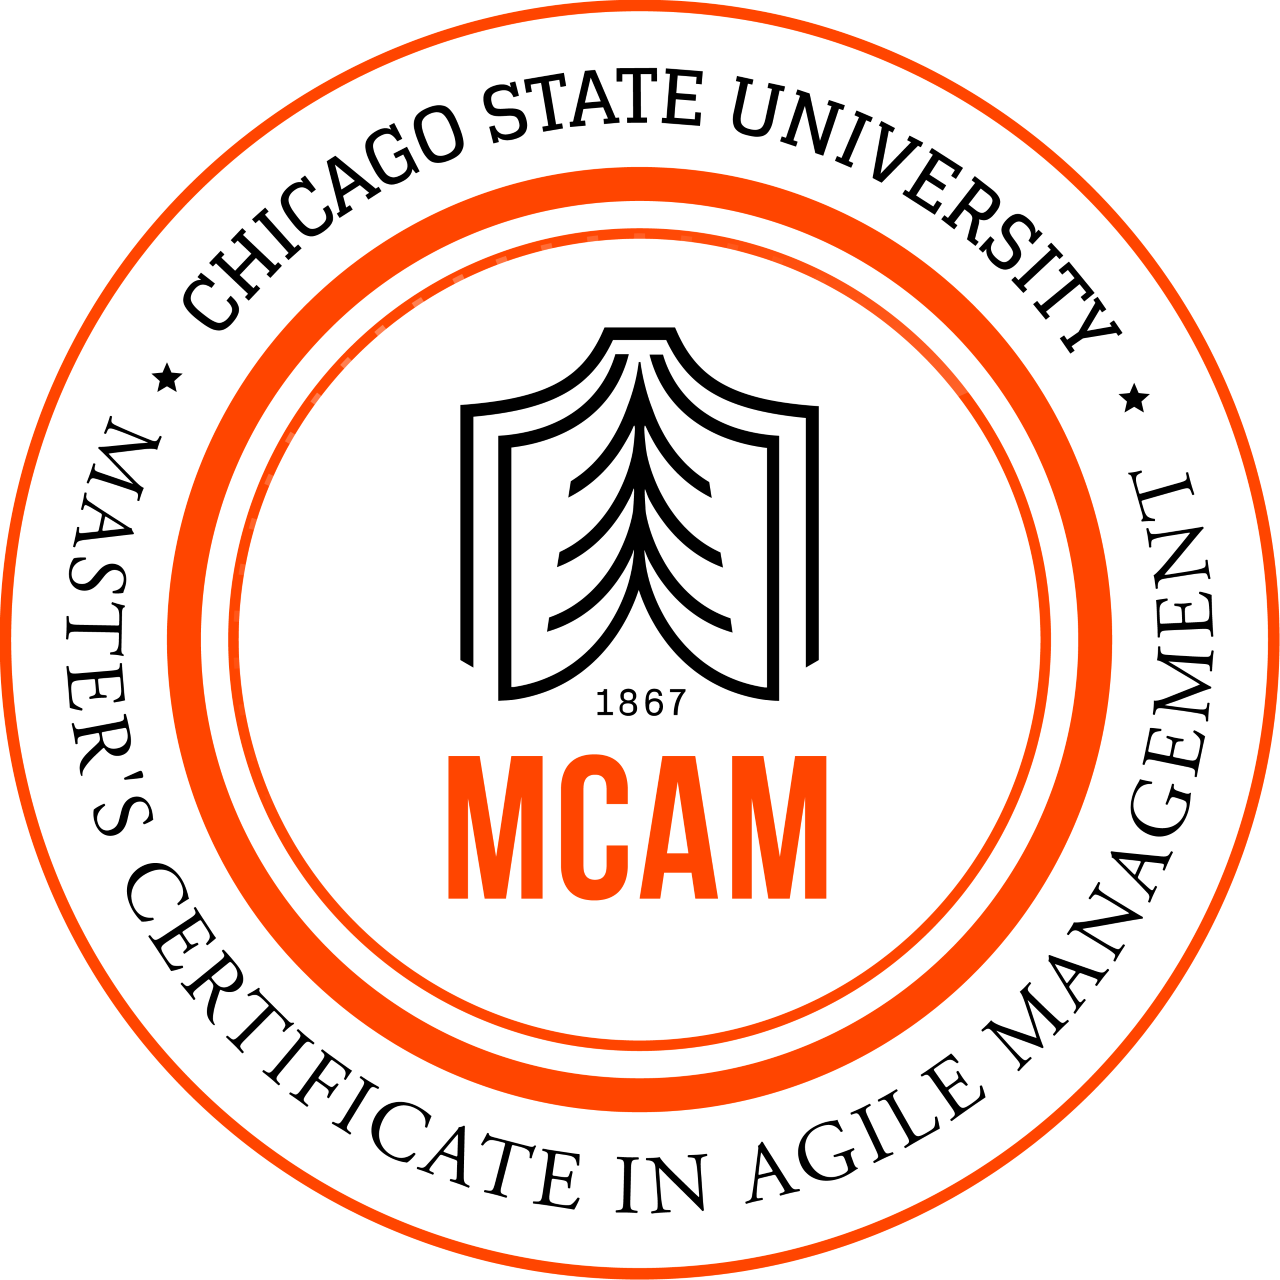 Master's Certificate in Agile Management (MCAM) from Chicago State University